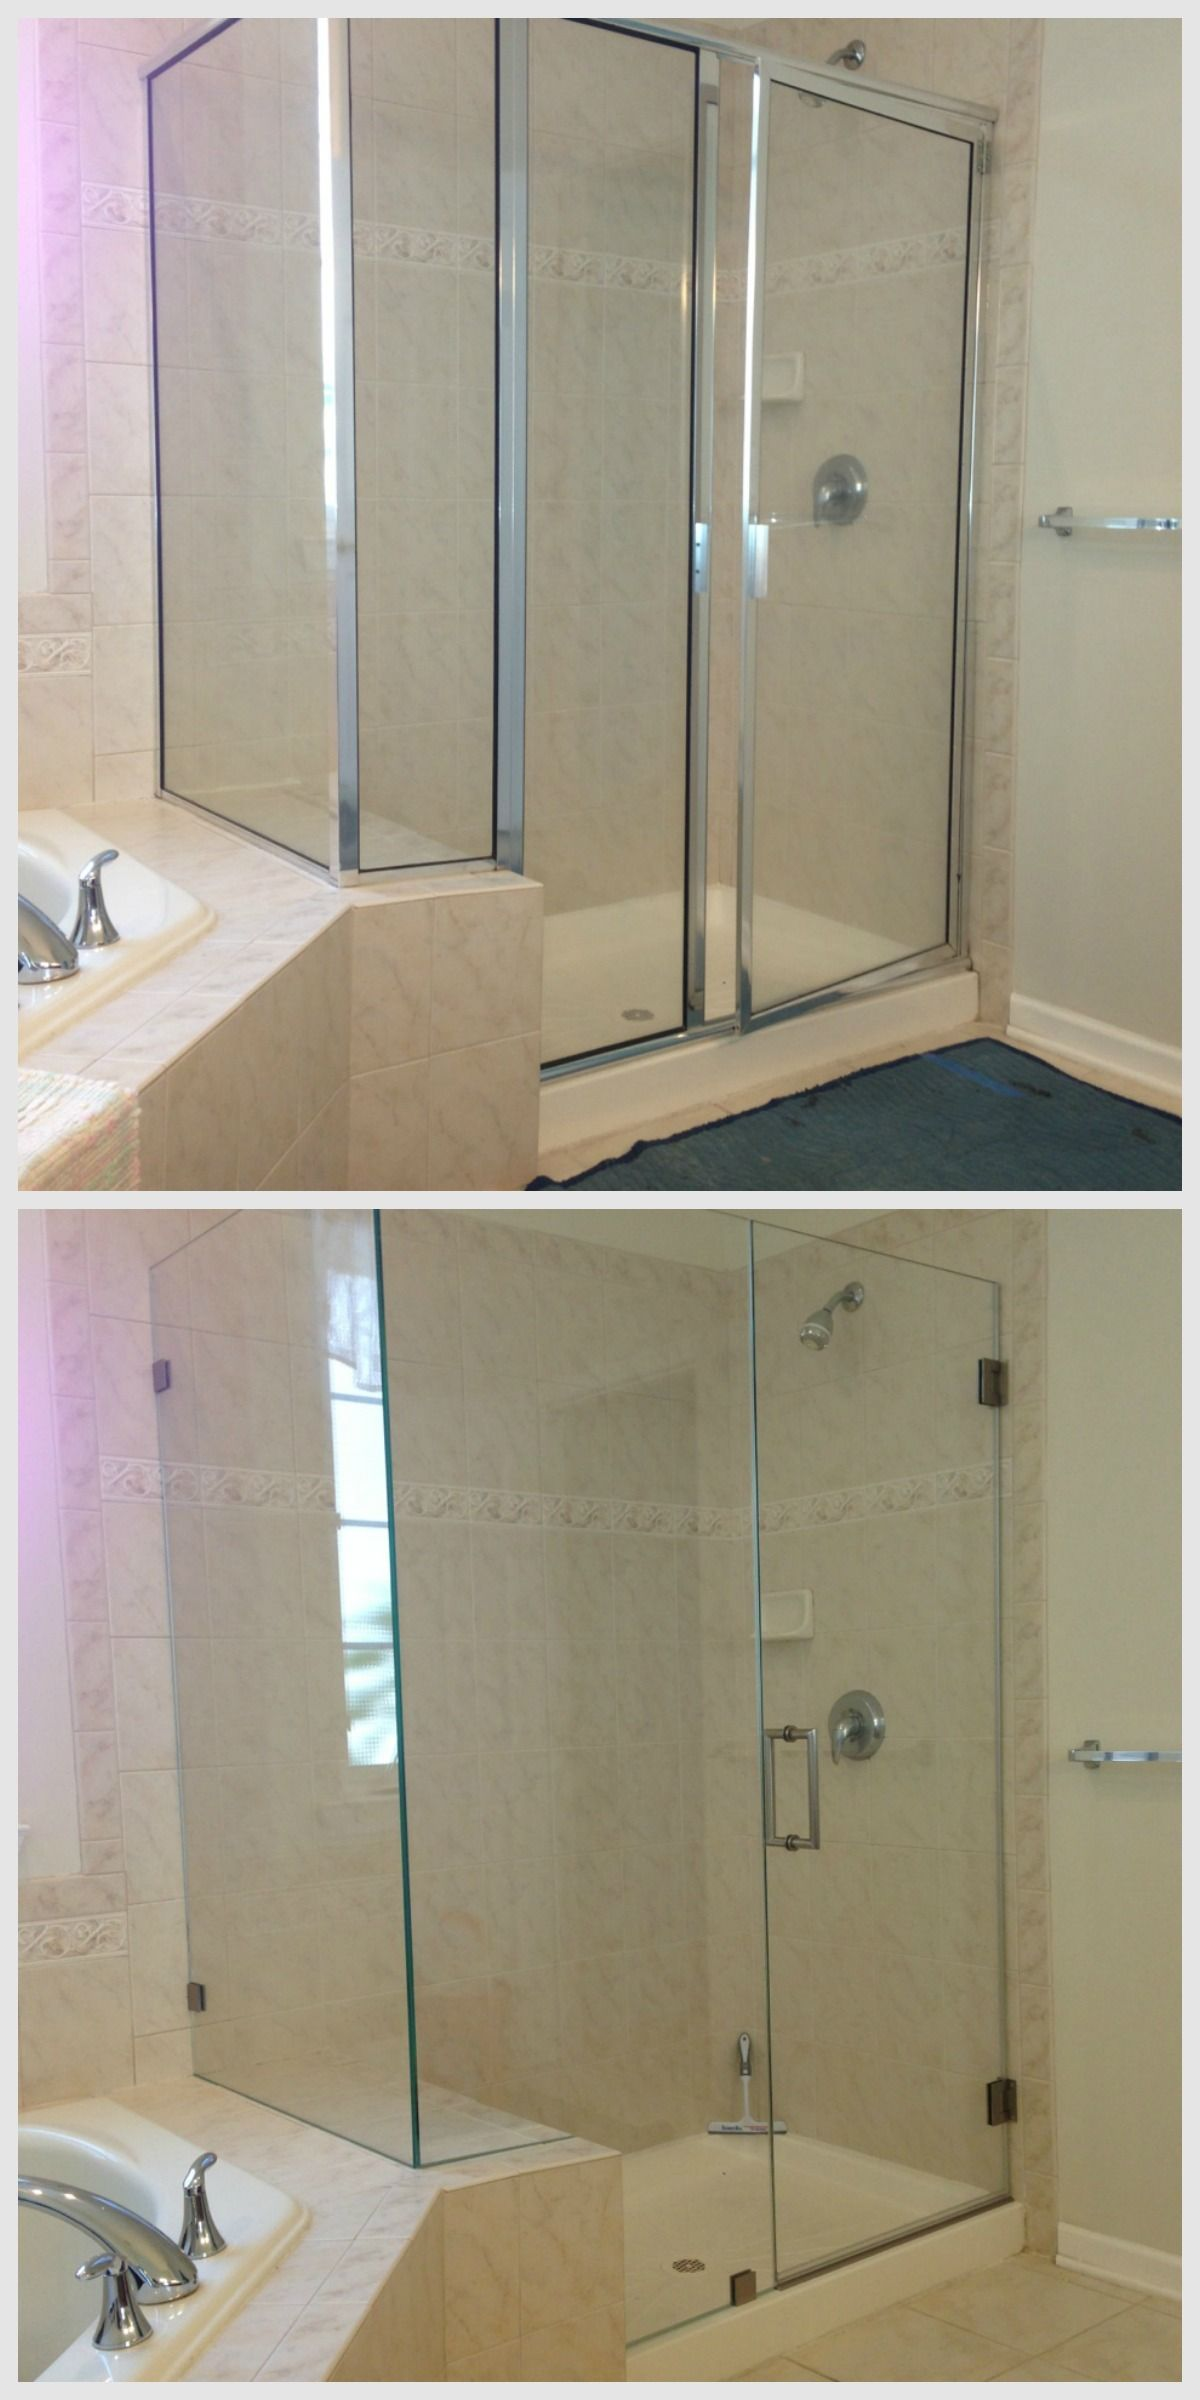 Out With The Old In With The New Showerman Frameless Shower Door Sleek Lines Breathes Fresh Modern Style Shower Doors Shower Enclosure Framed Shower Door